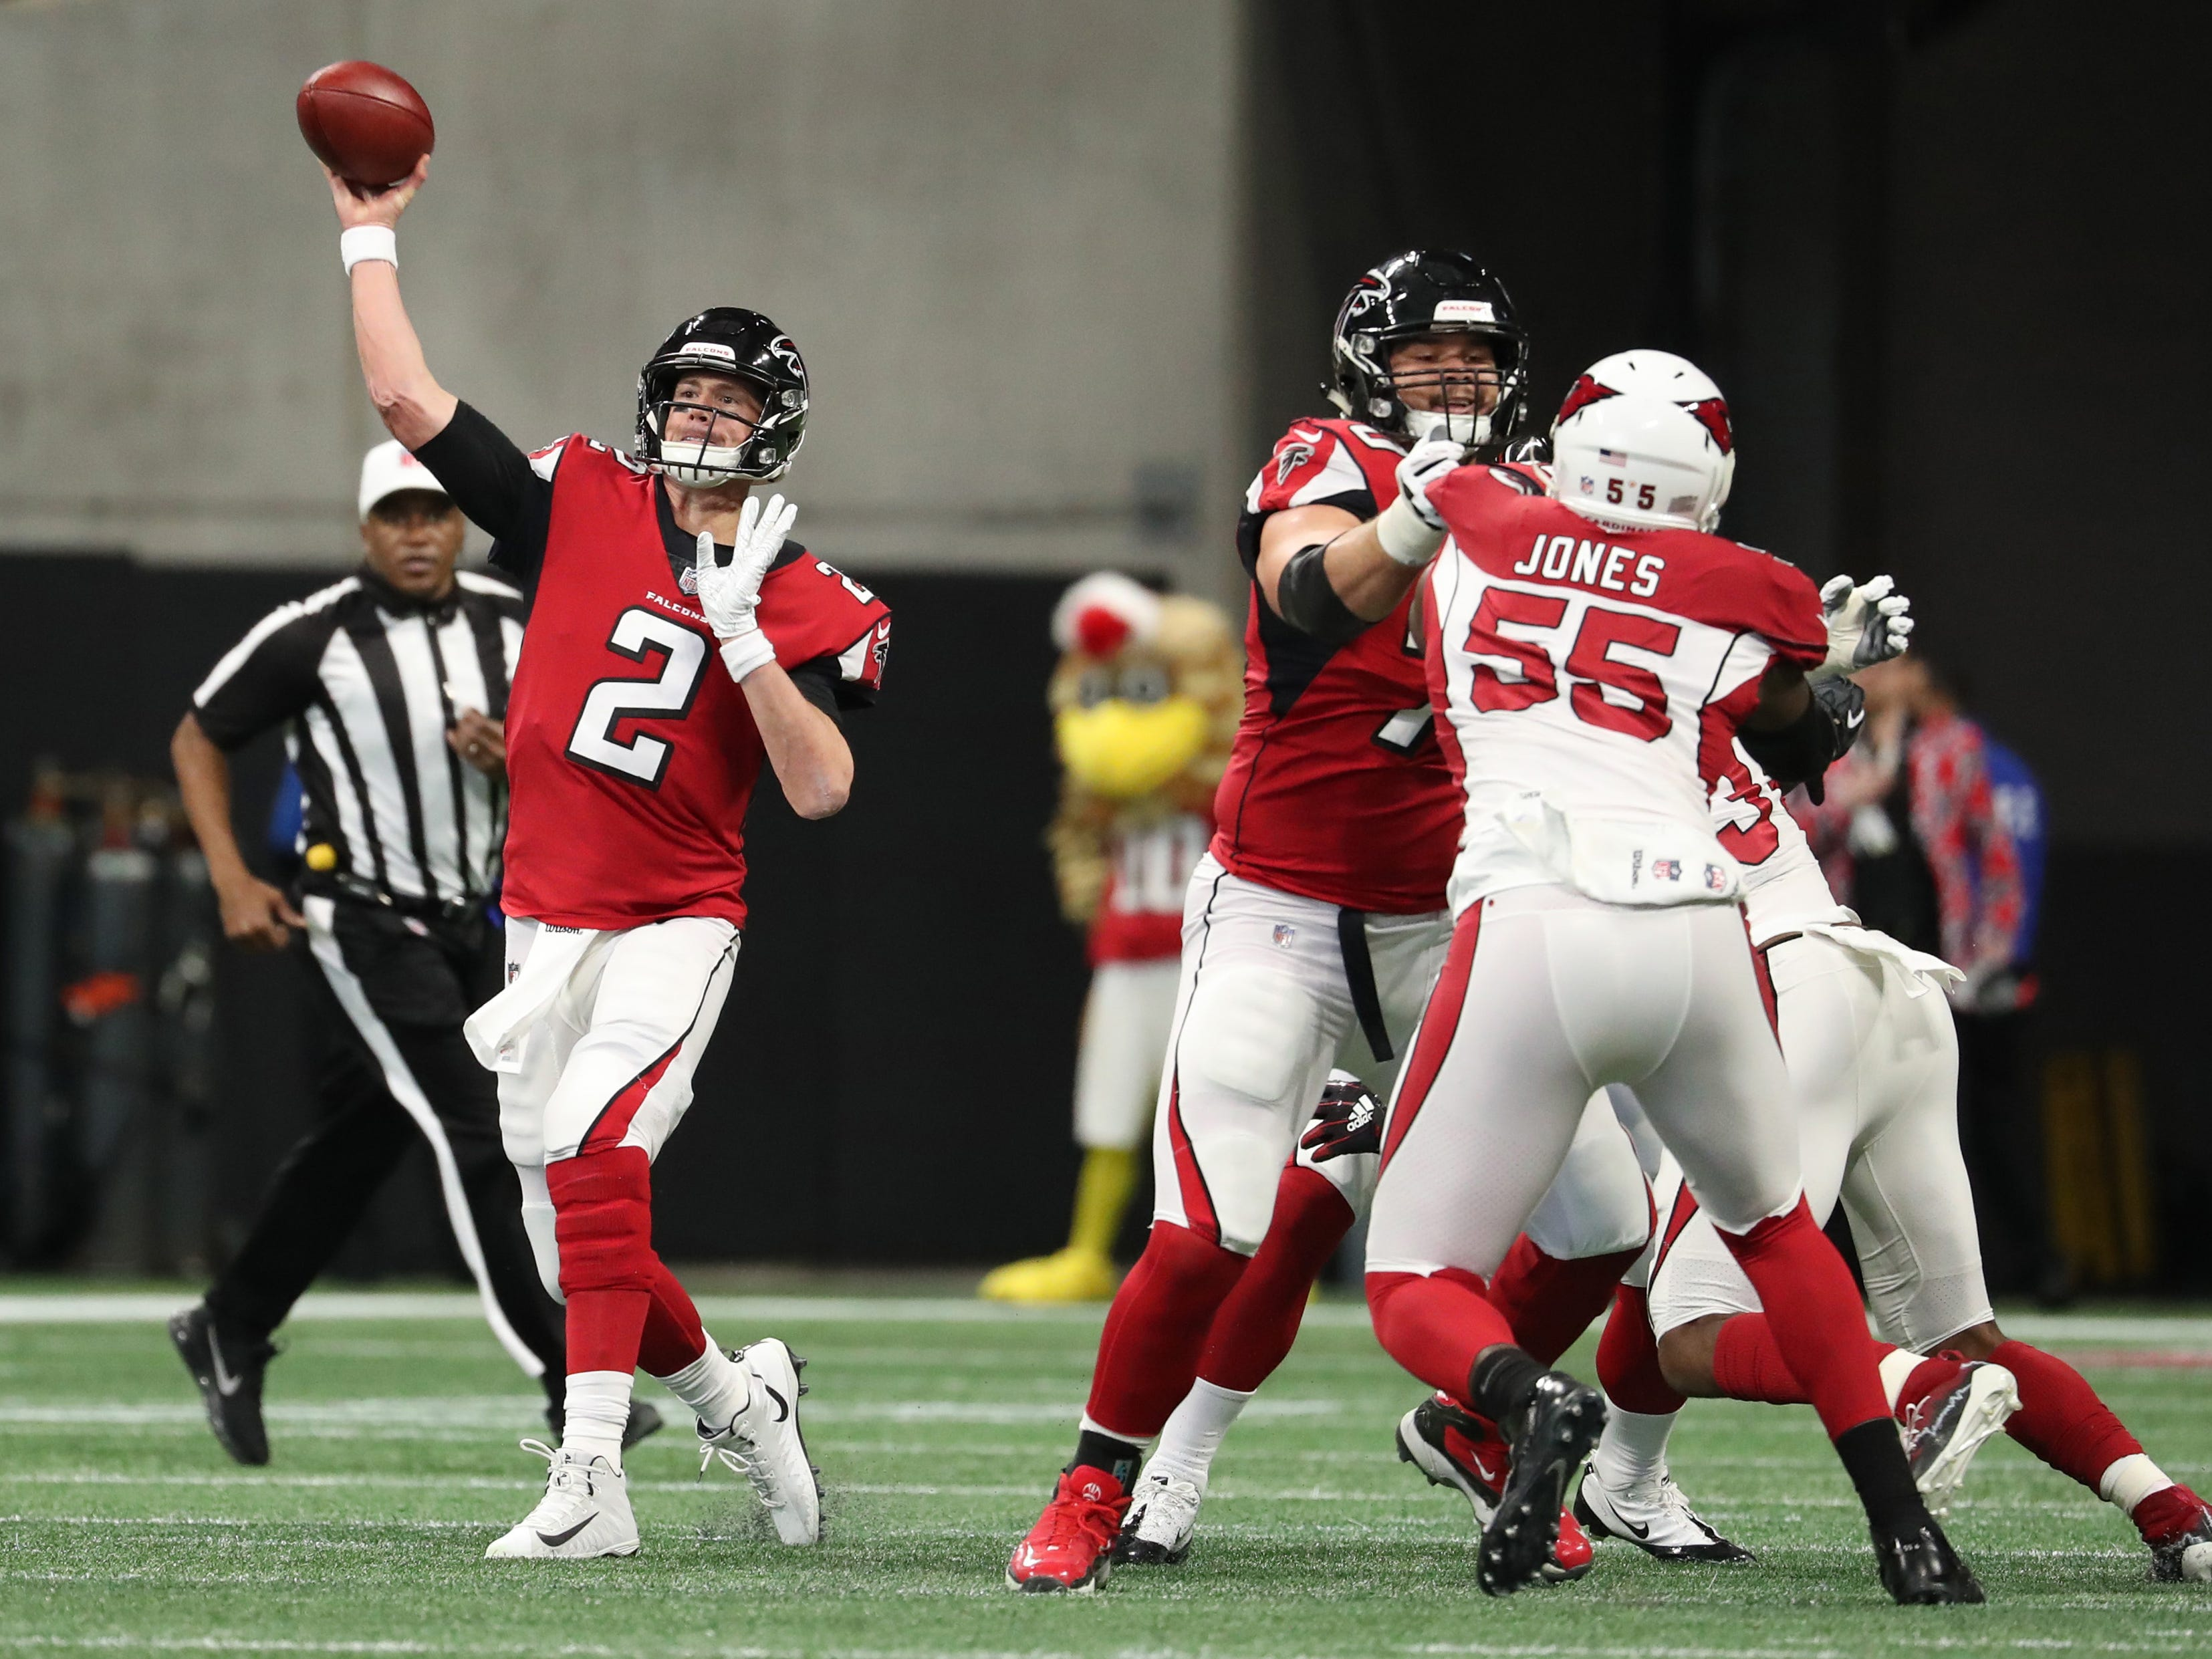 Dec 16, 2018; Atlanta, GA, USA; Atlanta Falcons quarterback Matt Ryan (2) attempts a pass as offensive tackle Jake Matthews (70) blocks Arizona Cardinals defensive end Chandler Jones (55) in the first quarter at Mercedes-Benz Stadium.